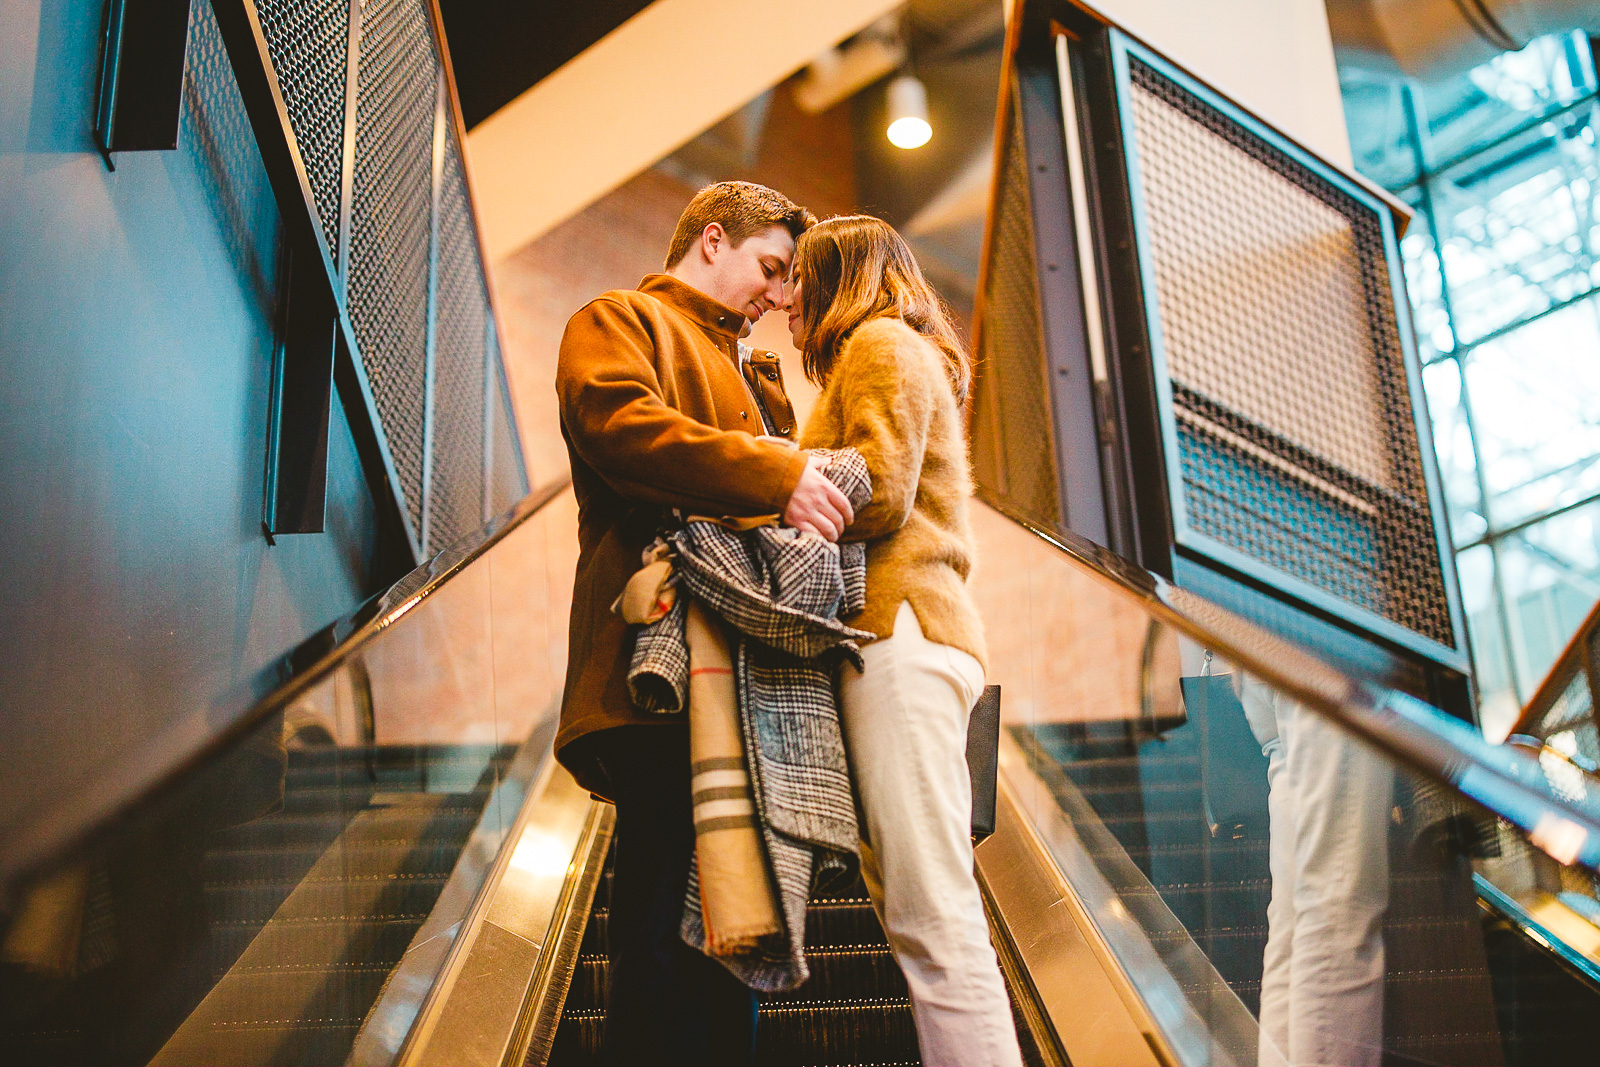 14 navy pier engagement session - Navy Pier Engagement Session // Tyler + Jing